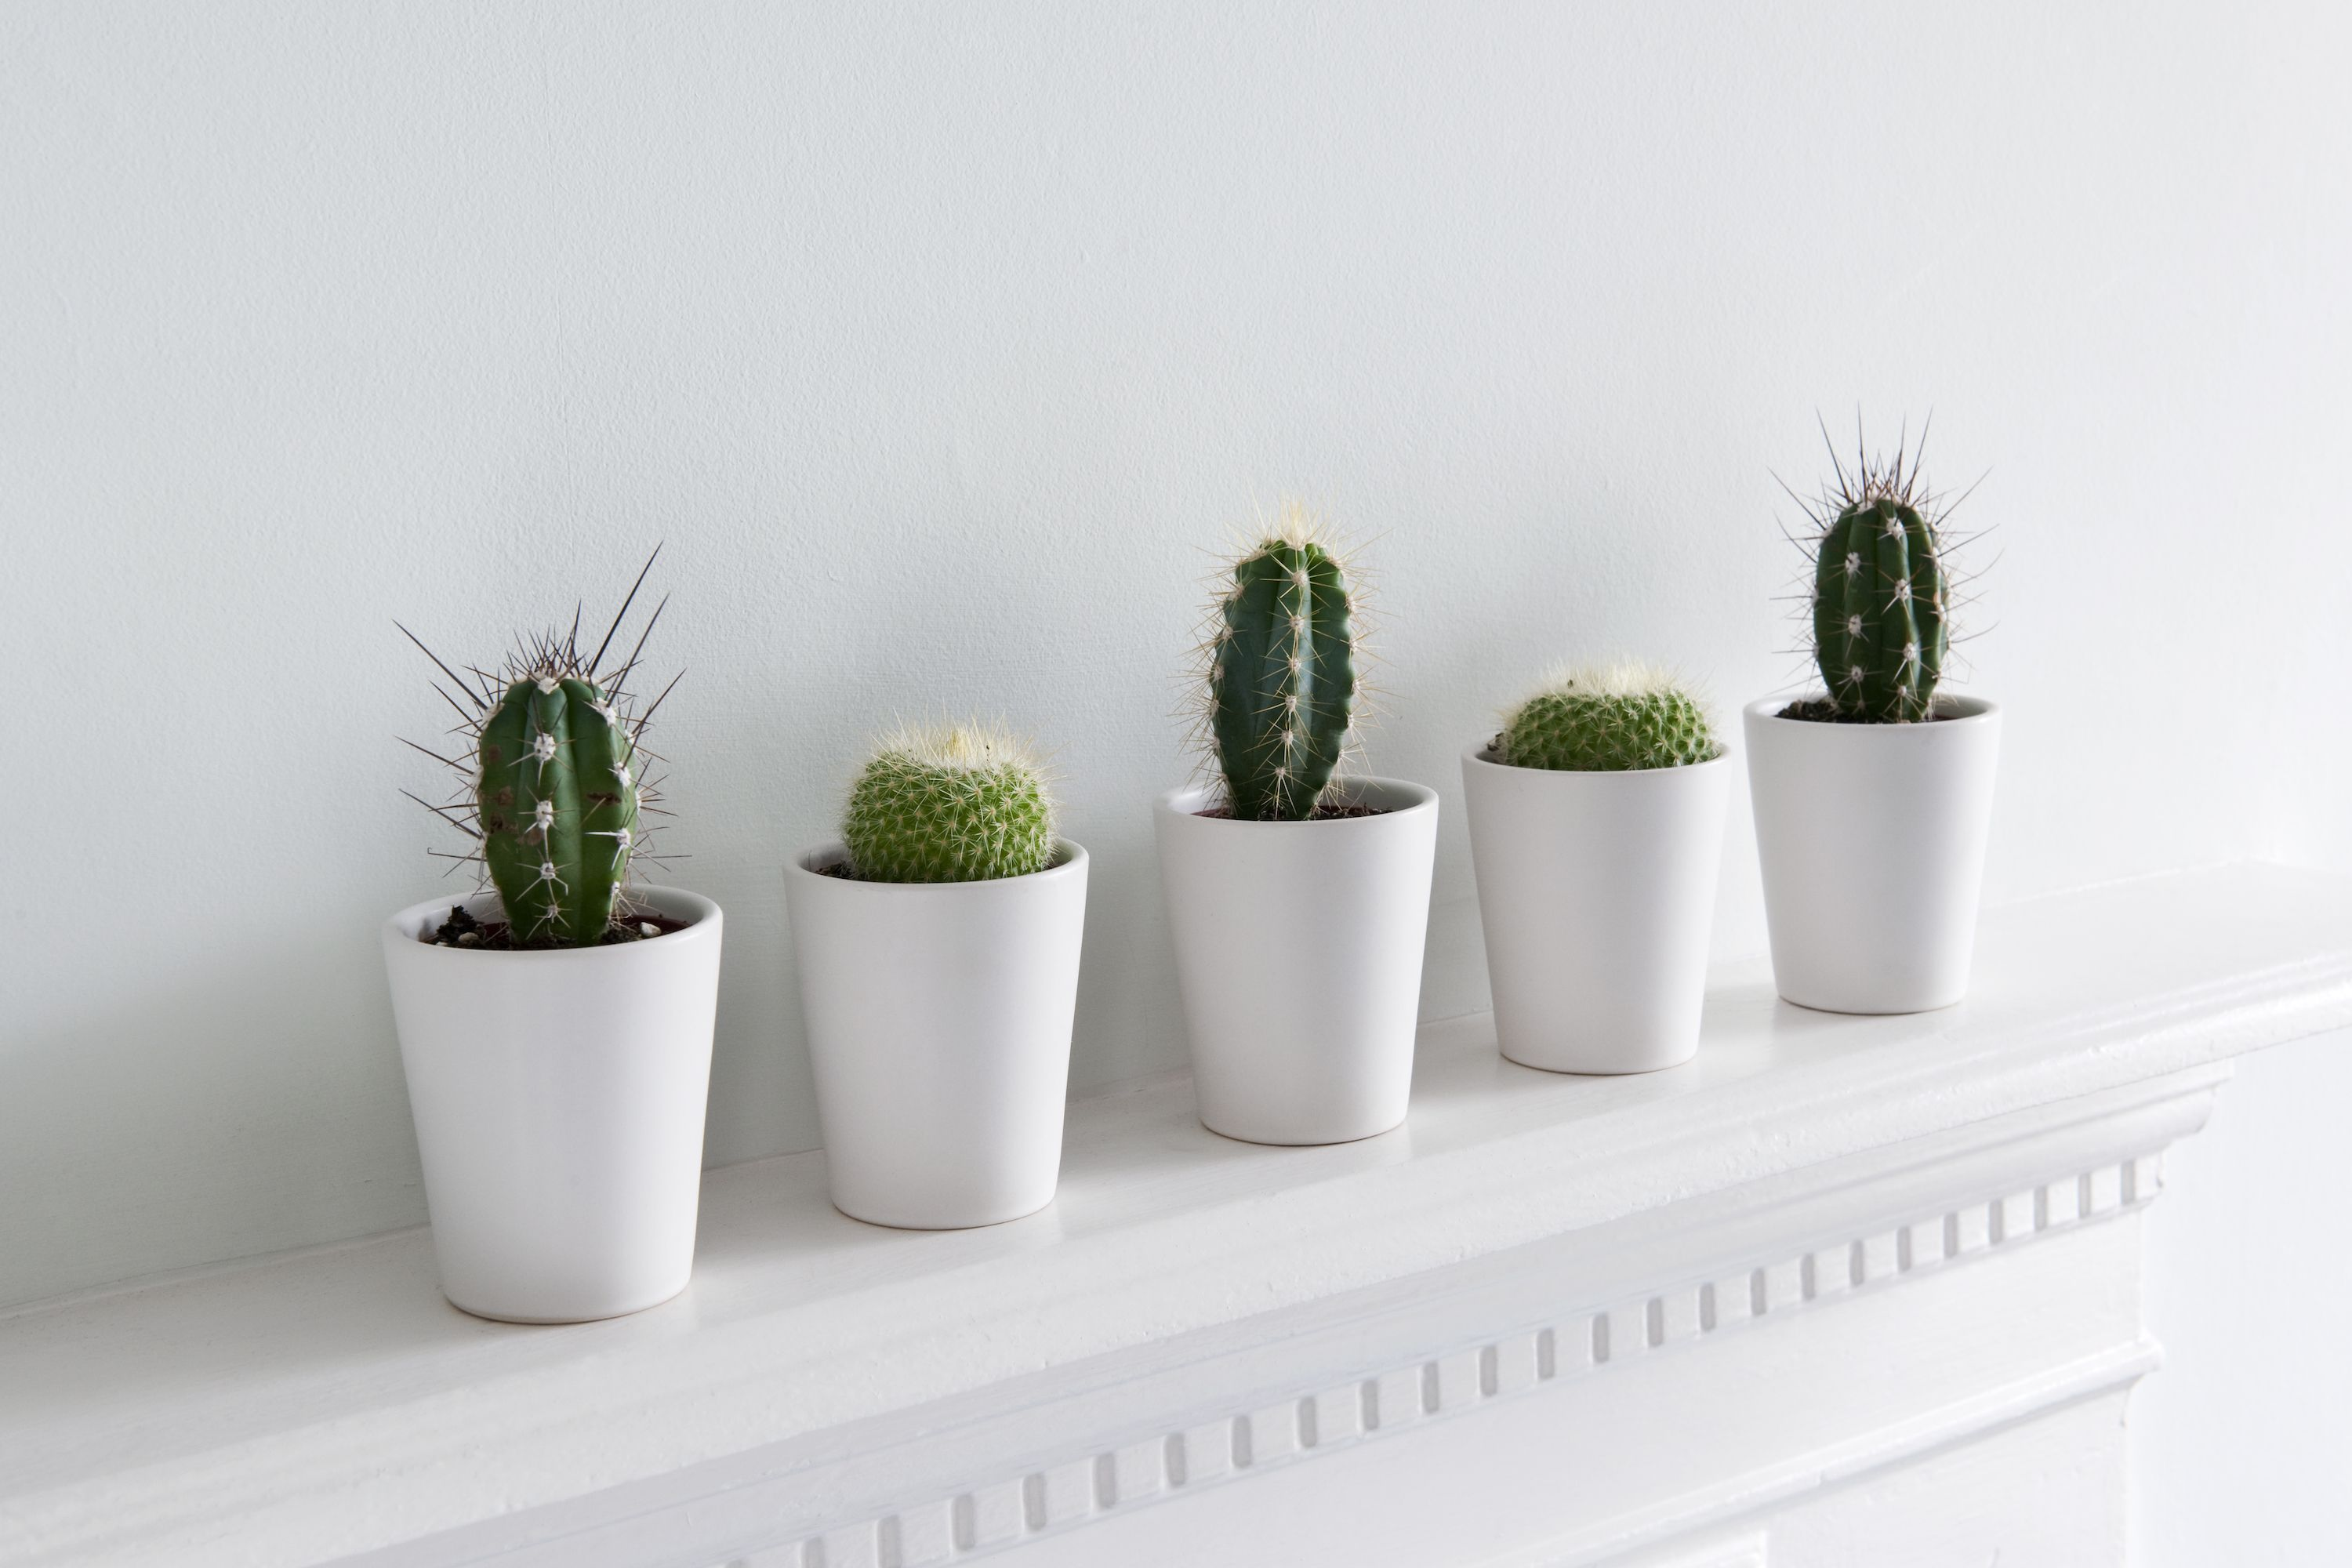 10 Best Indoor Plants For Apartments - Low-Maintenance Plants For ...